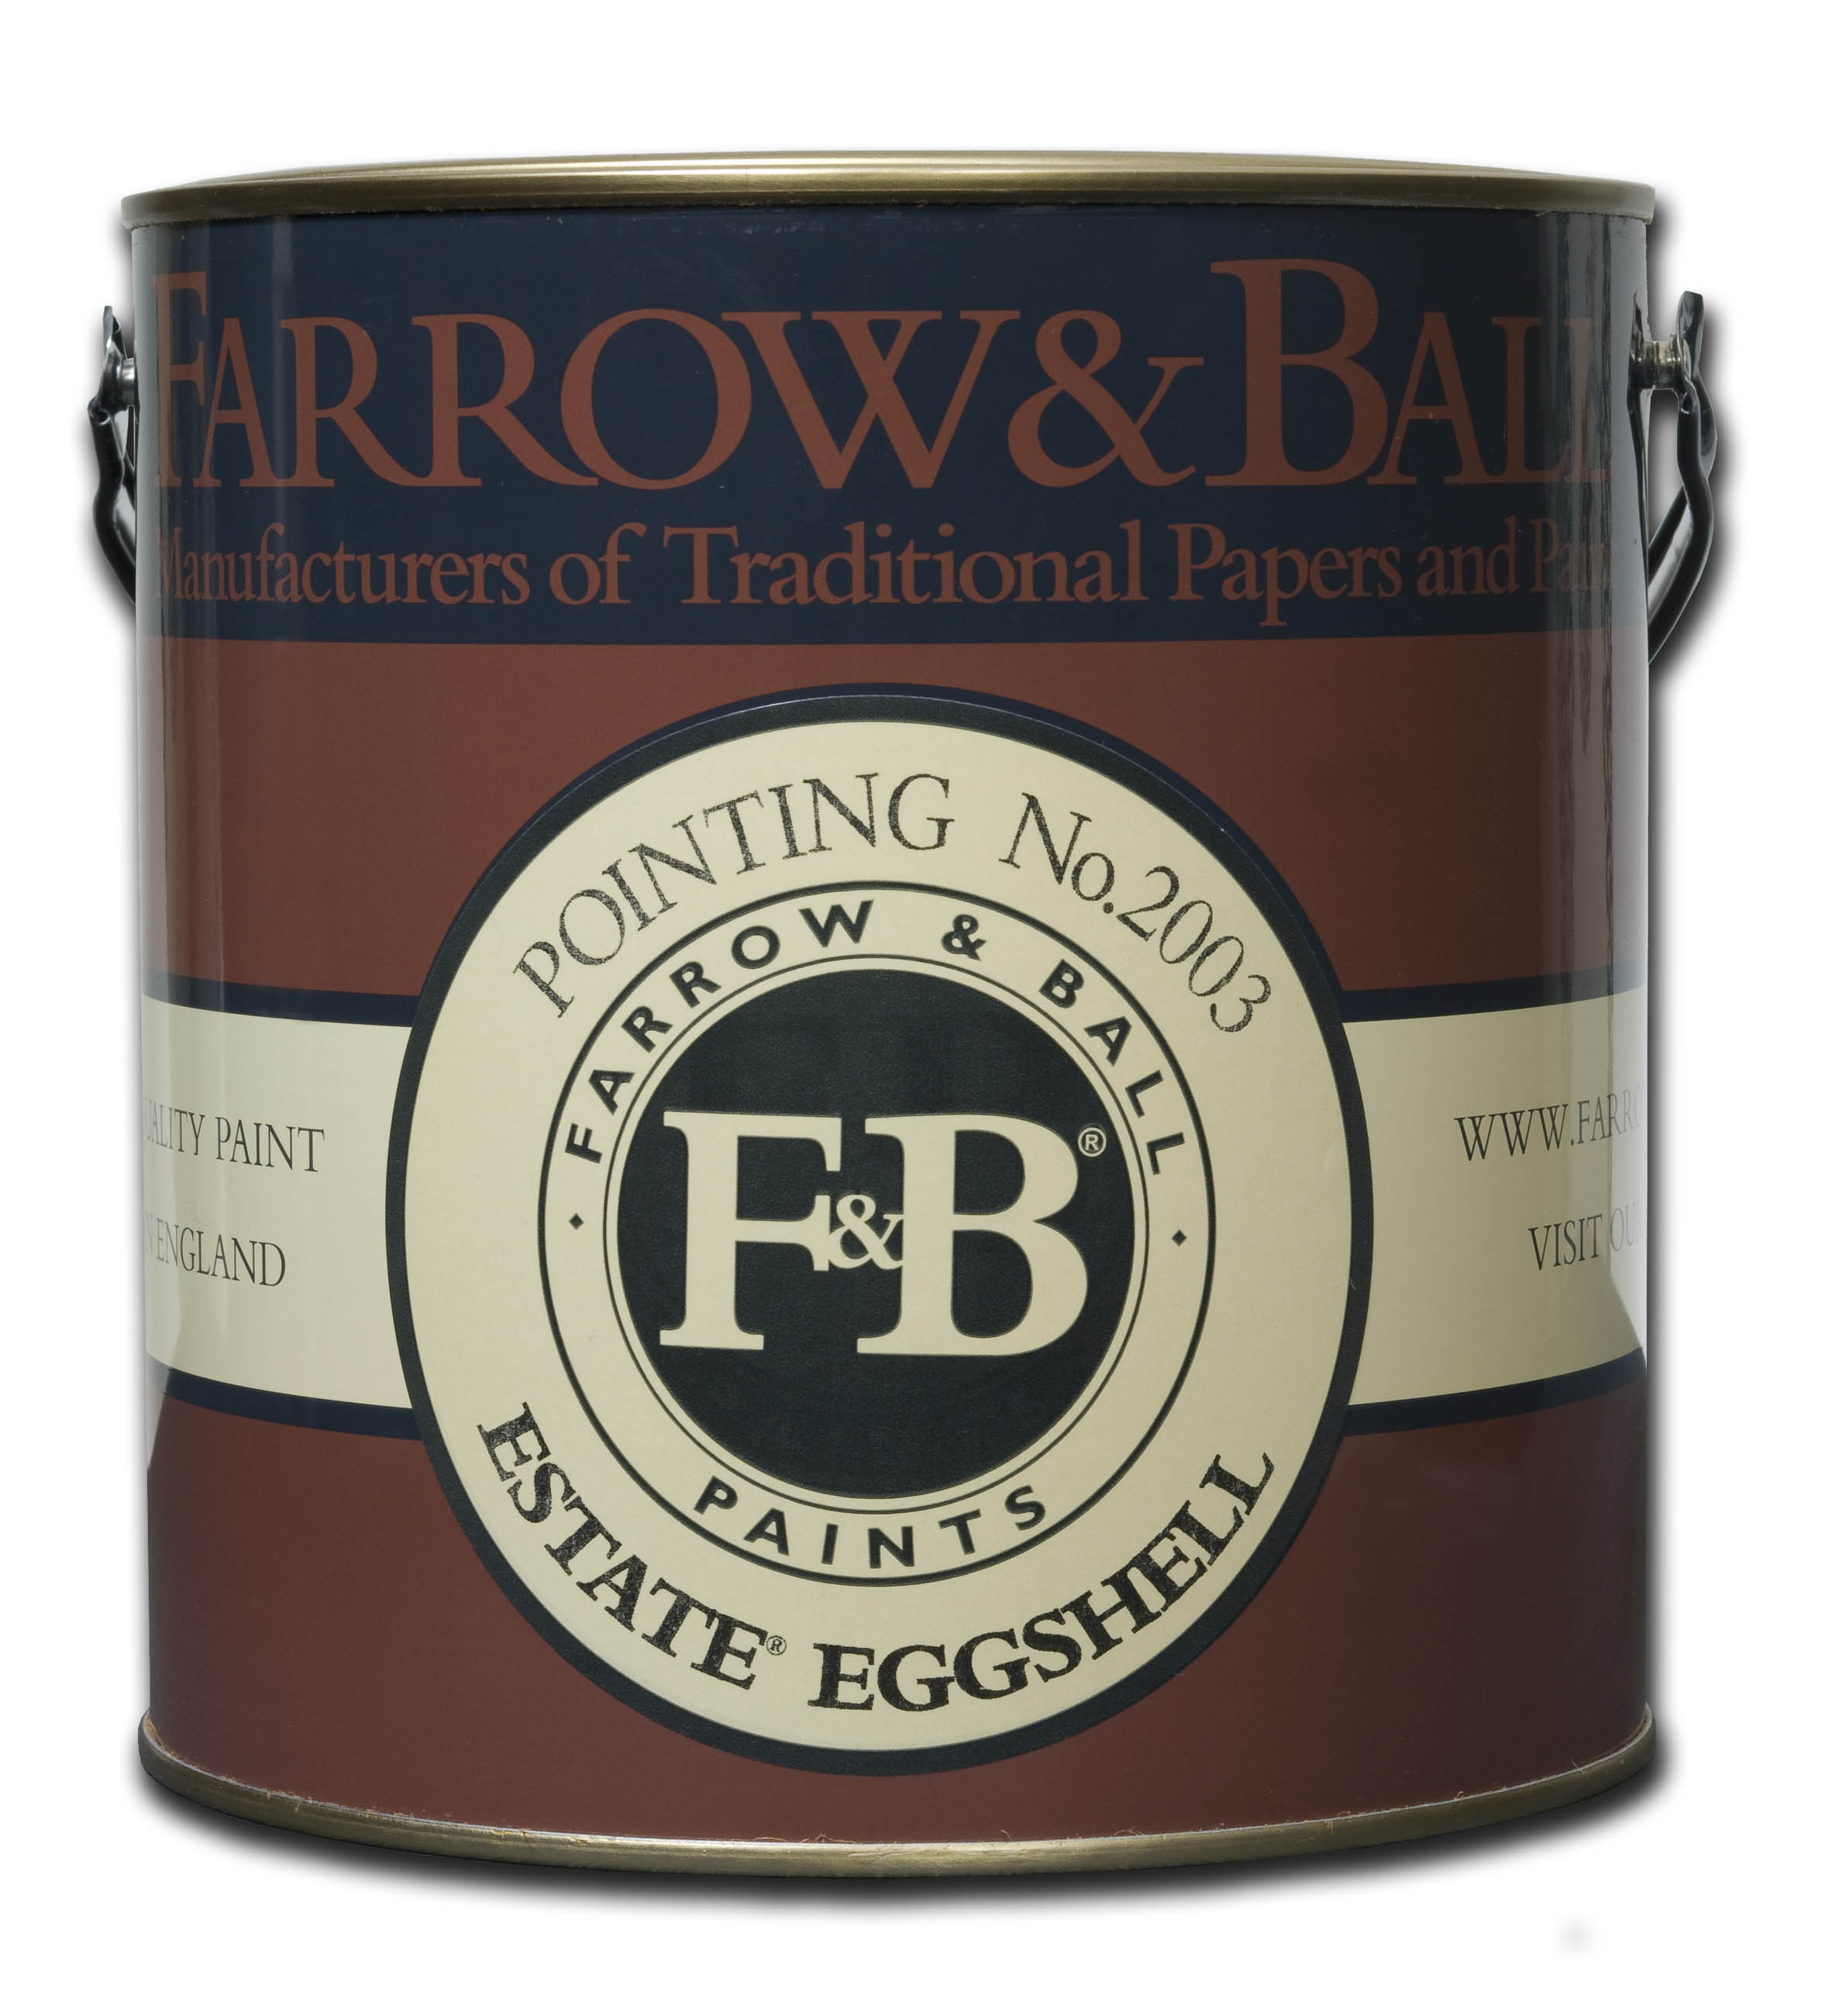 farrow ball estate emulsion farrow and ball estate. Black Bedroom Furniture Sets. Home Design Ideas